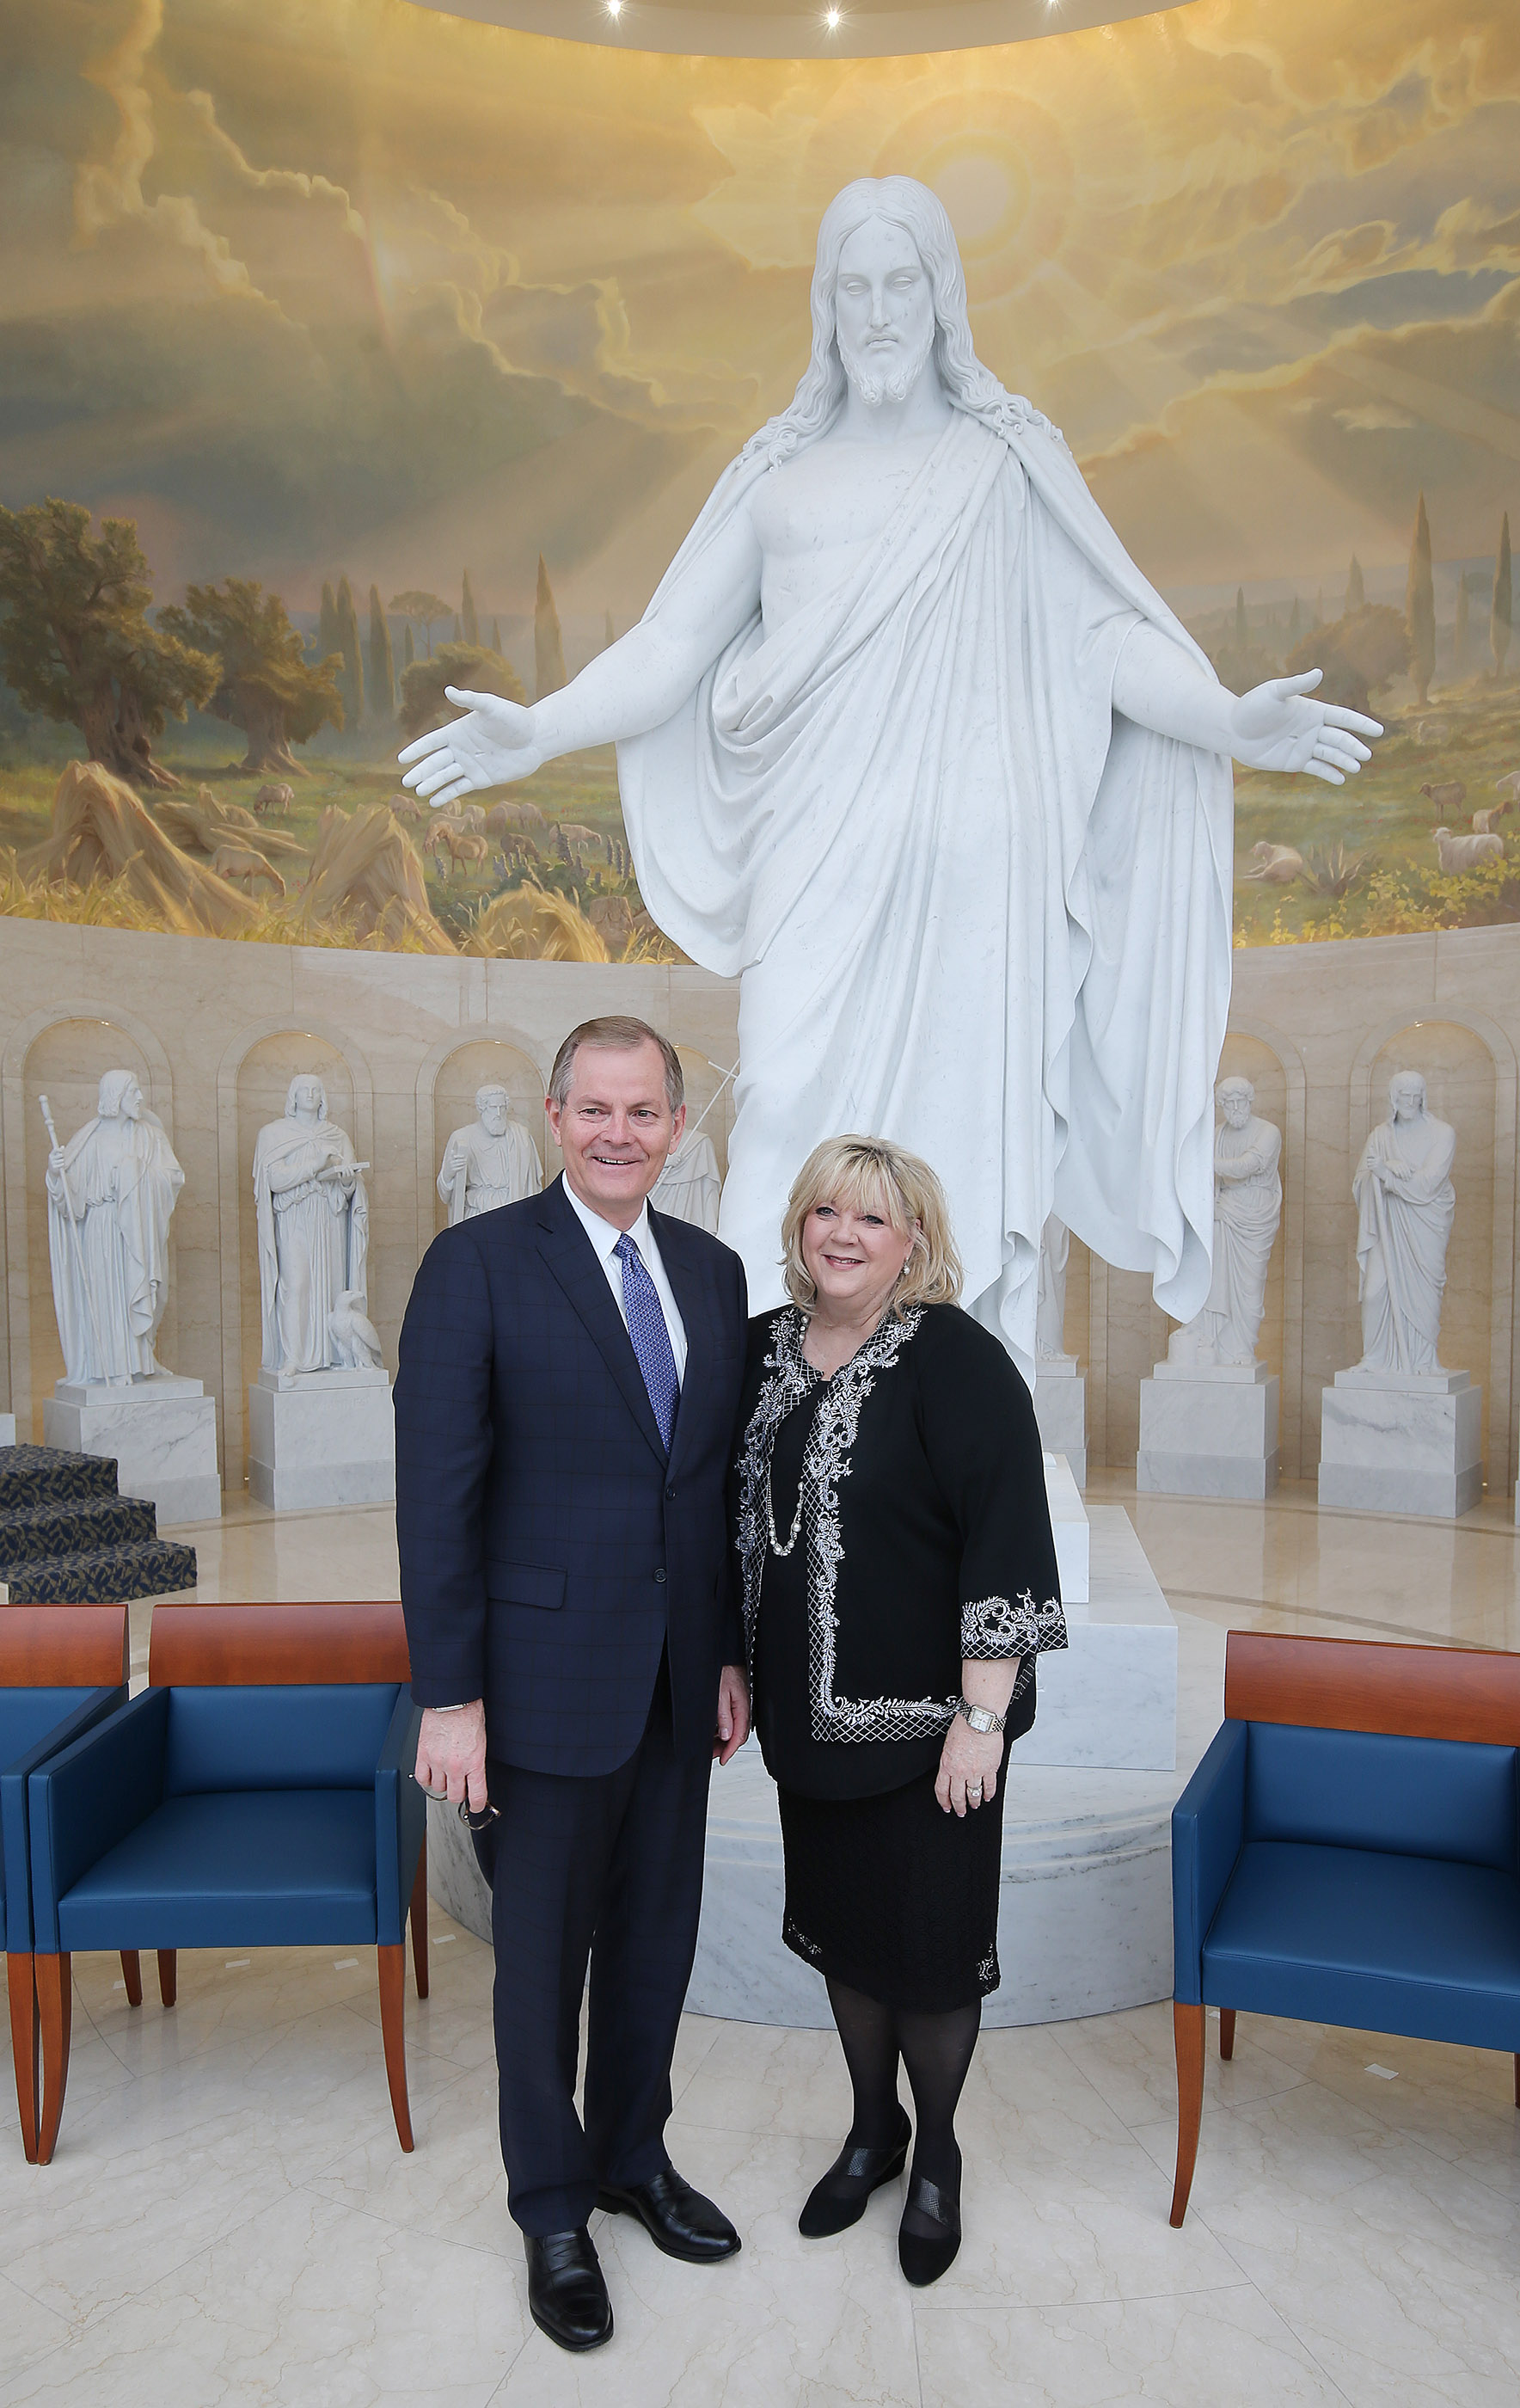 Elder Gary E. Stevenson, Quorum of the Twelve Apostles of The Church of Jesus Christ of Latter-day Saints, and his wife Lesa pose for a photograph in the Rome Italy Temple visitors center in Rome, Italy on Monday, March 11, 2019.